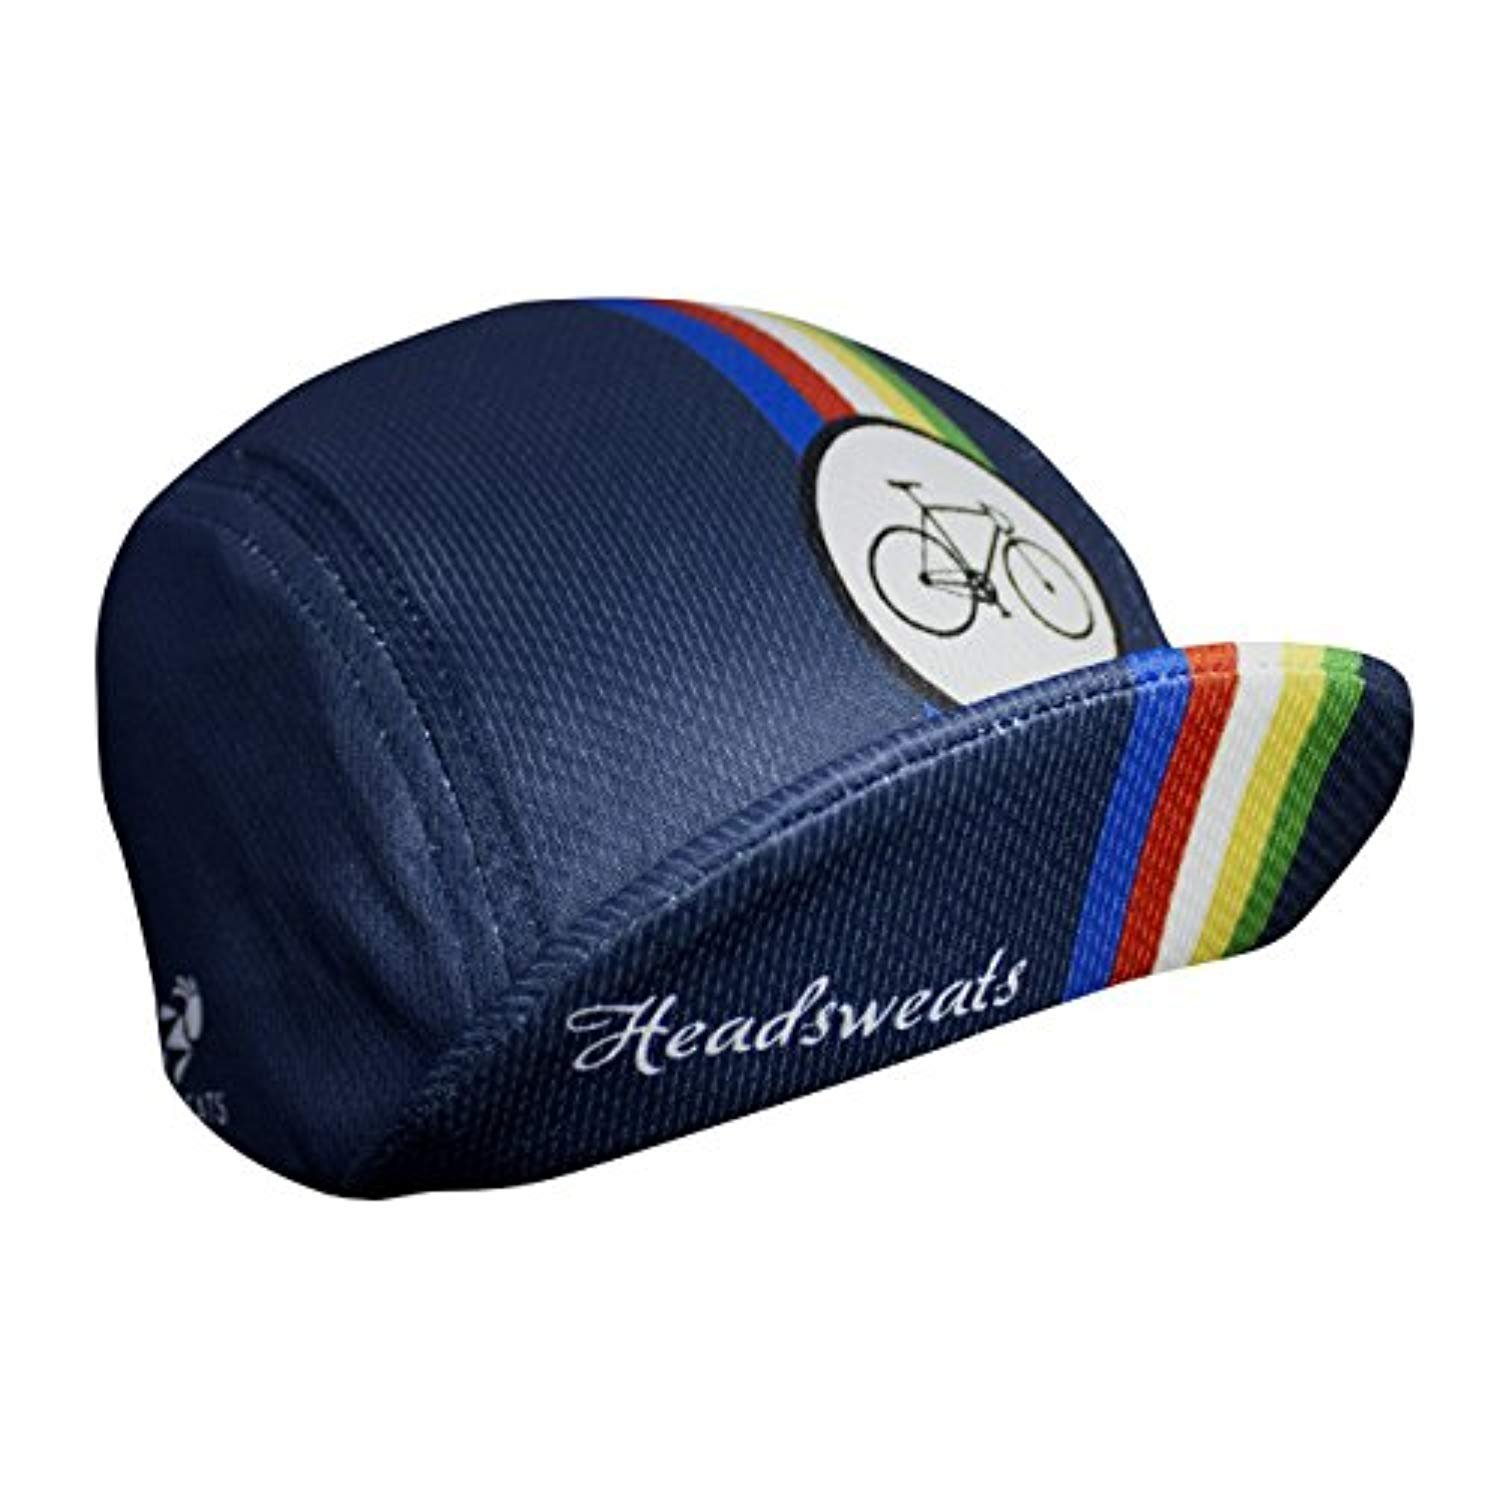 Headsweats Spin Cycle Cap, One Size, Black 7701 802